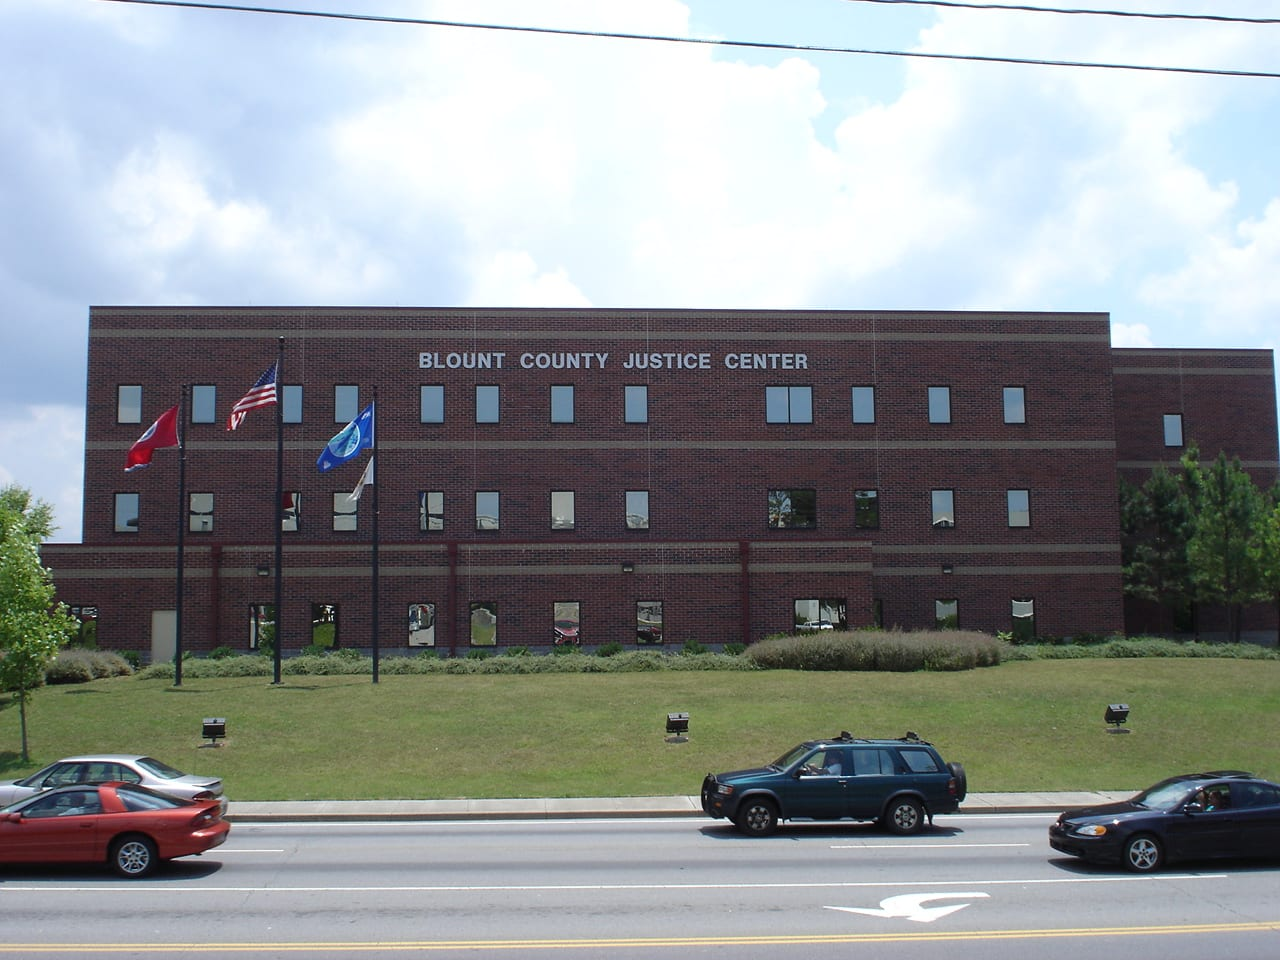 Blount County Justice Center